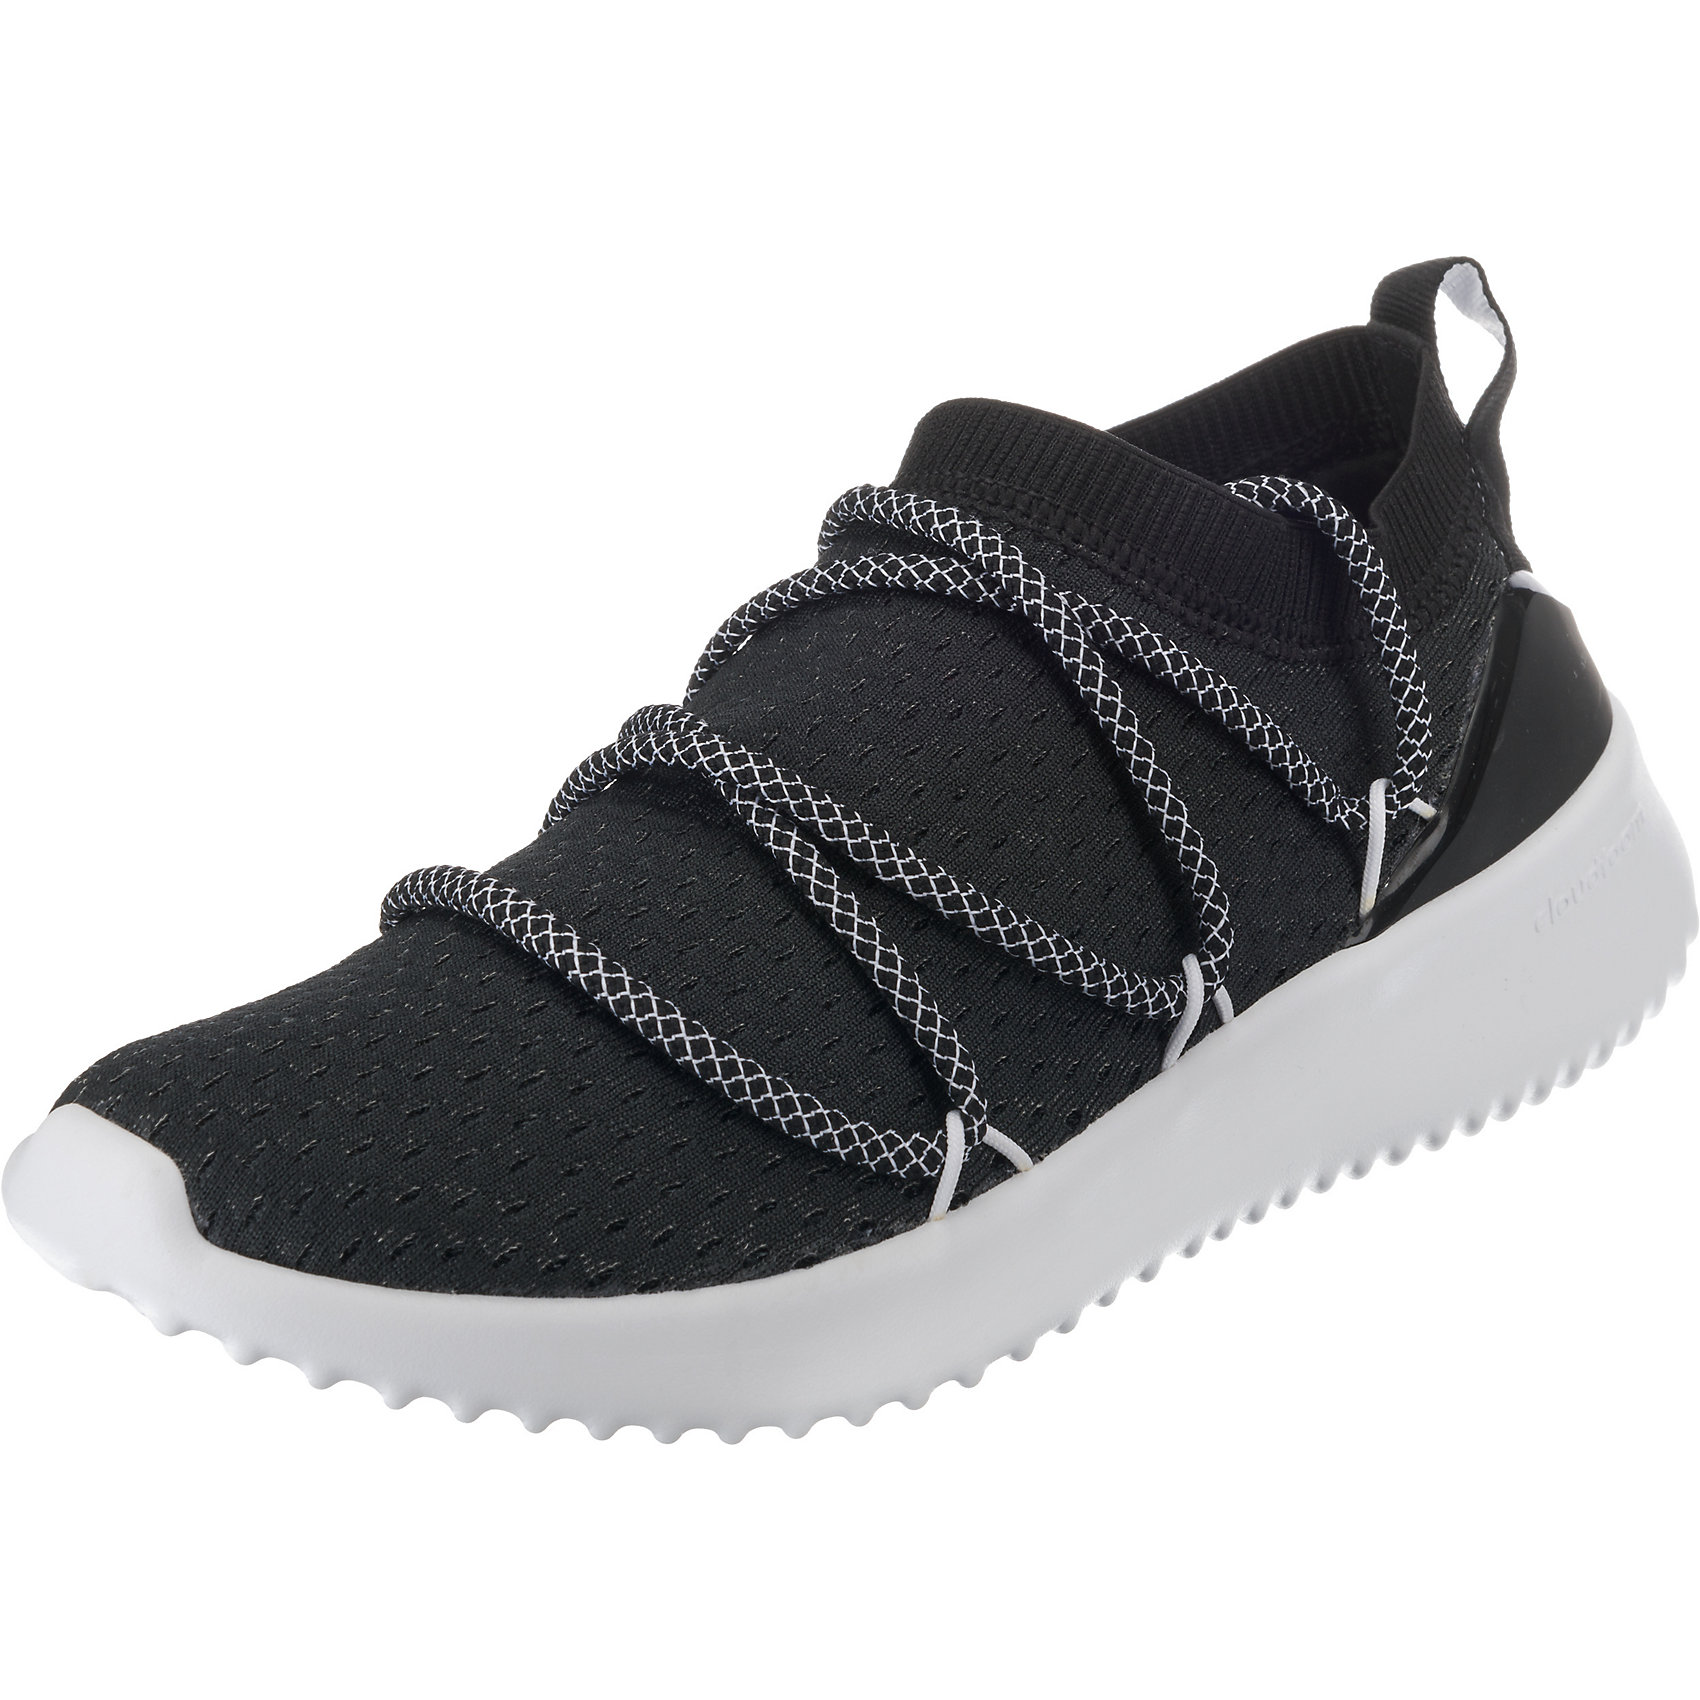 cheap for discount 0558c 0f879 Neu-adidas-Sport-Inspired-Ultimamotion-Slip-On-Sneaker-